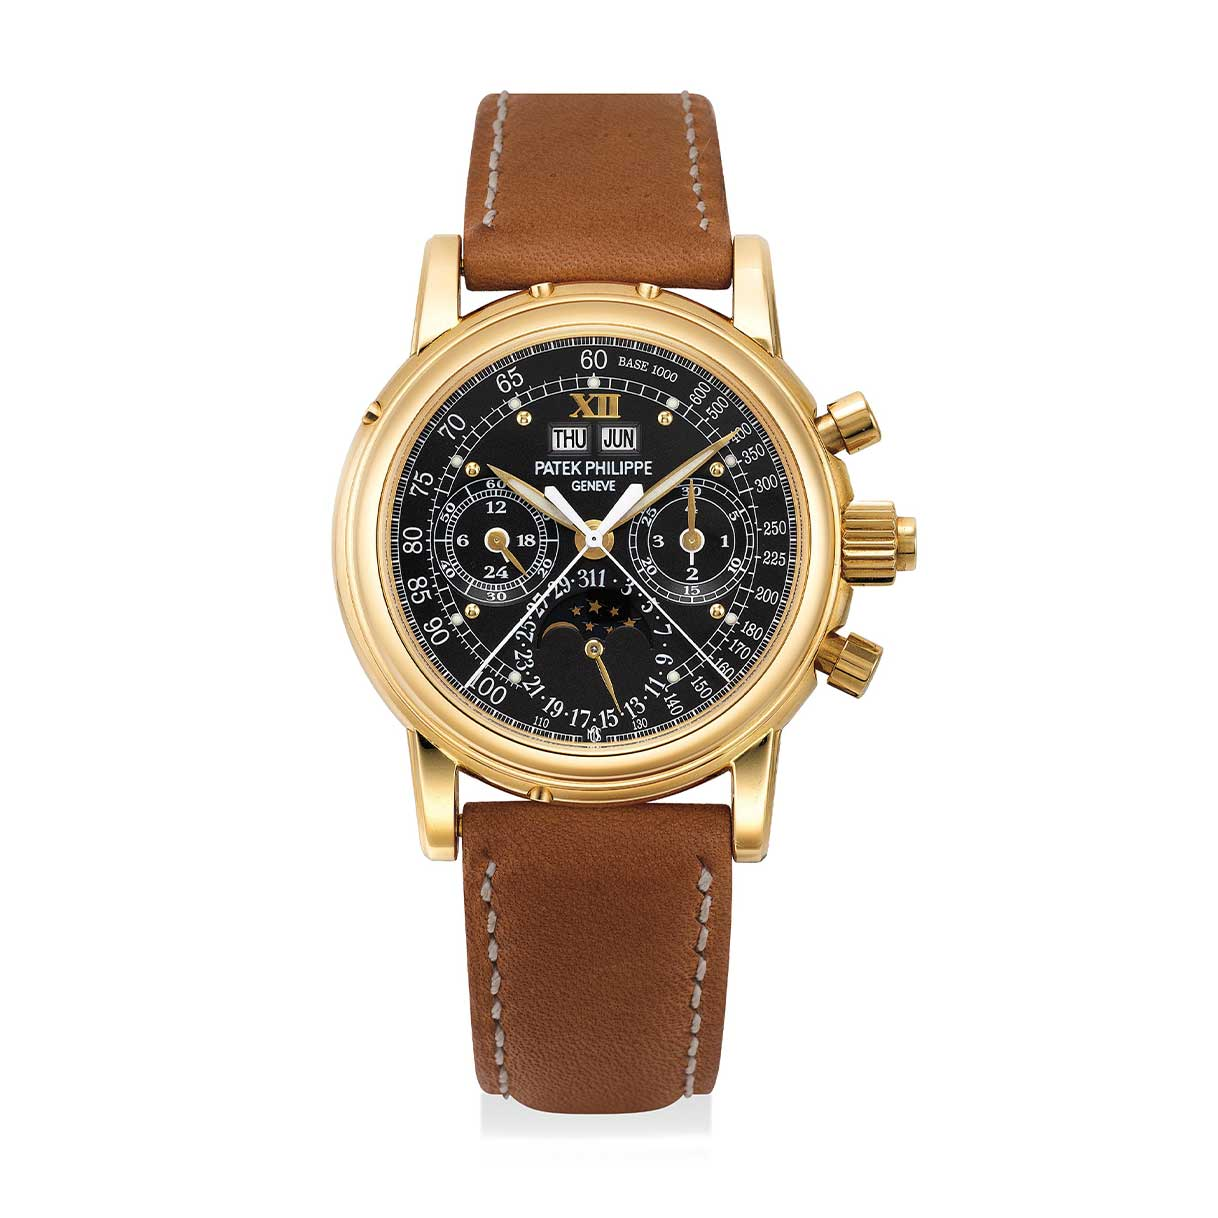 Formerly the property of Hollywood super-agent Michael Ovitz, a yellow gold Patek Philippe ref. 5004 perpetual calendar split seconds chronograph wristwatch with special luminous black dial and applied Roman numeral at 12 o'clock (Image: phillips.com)